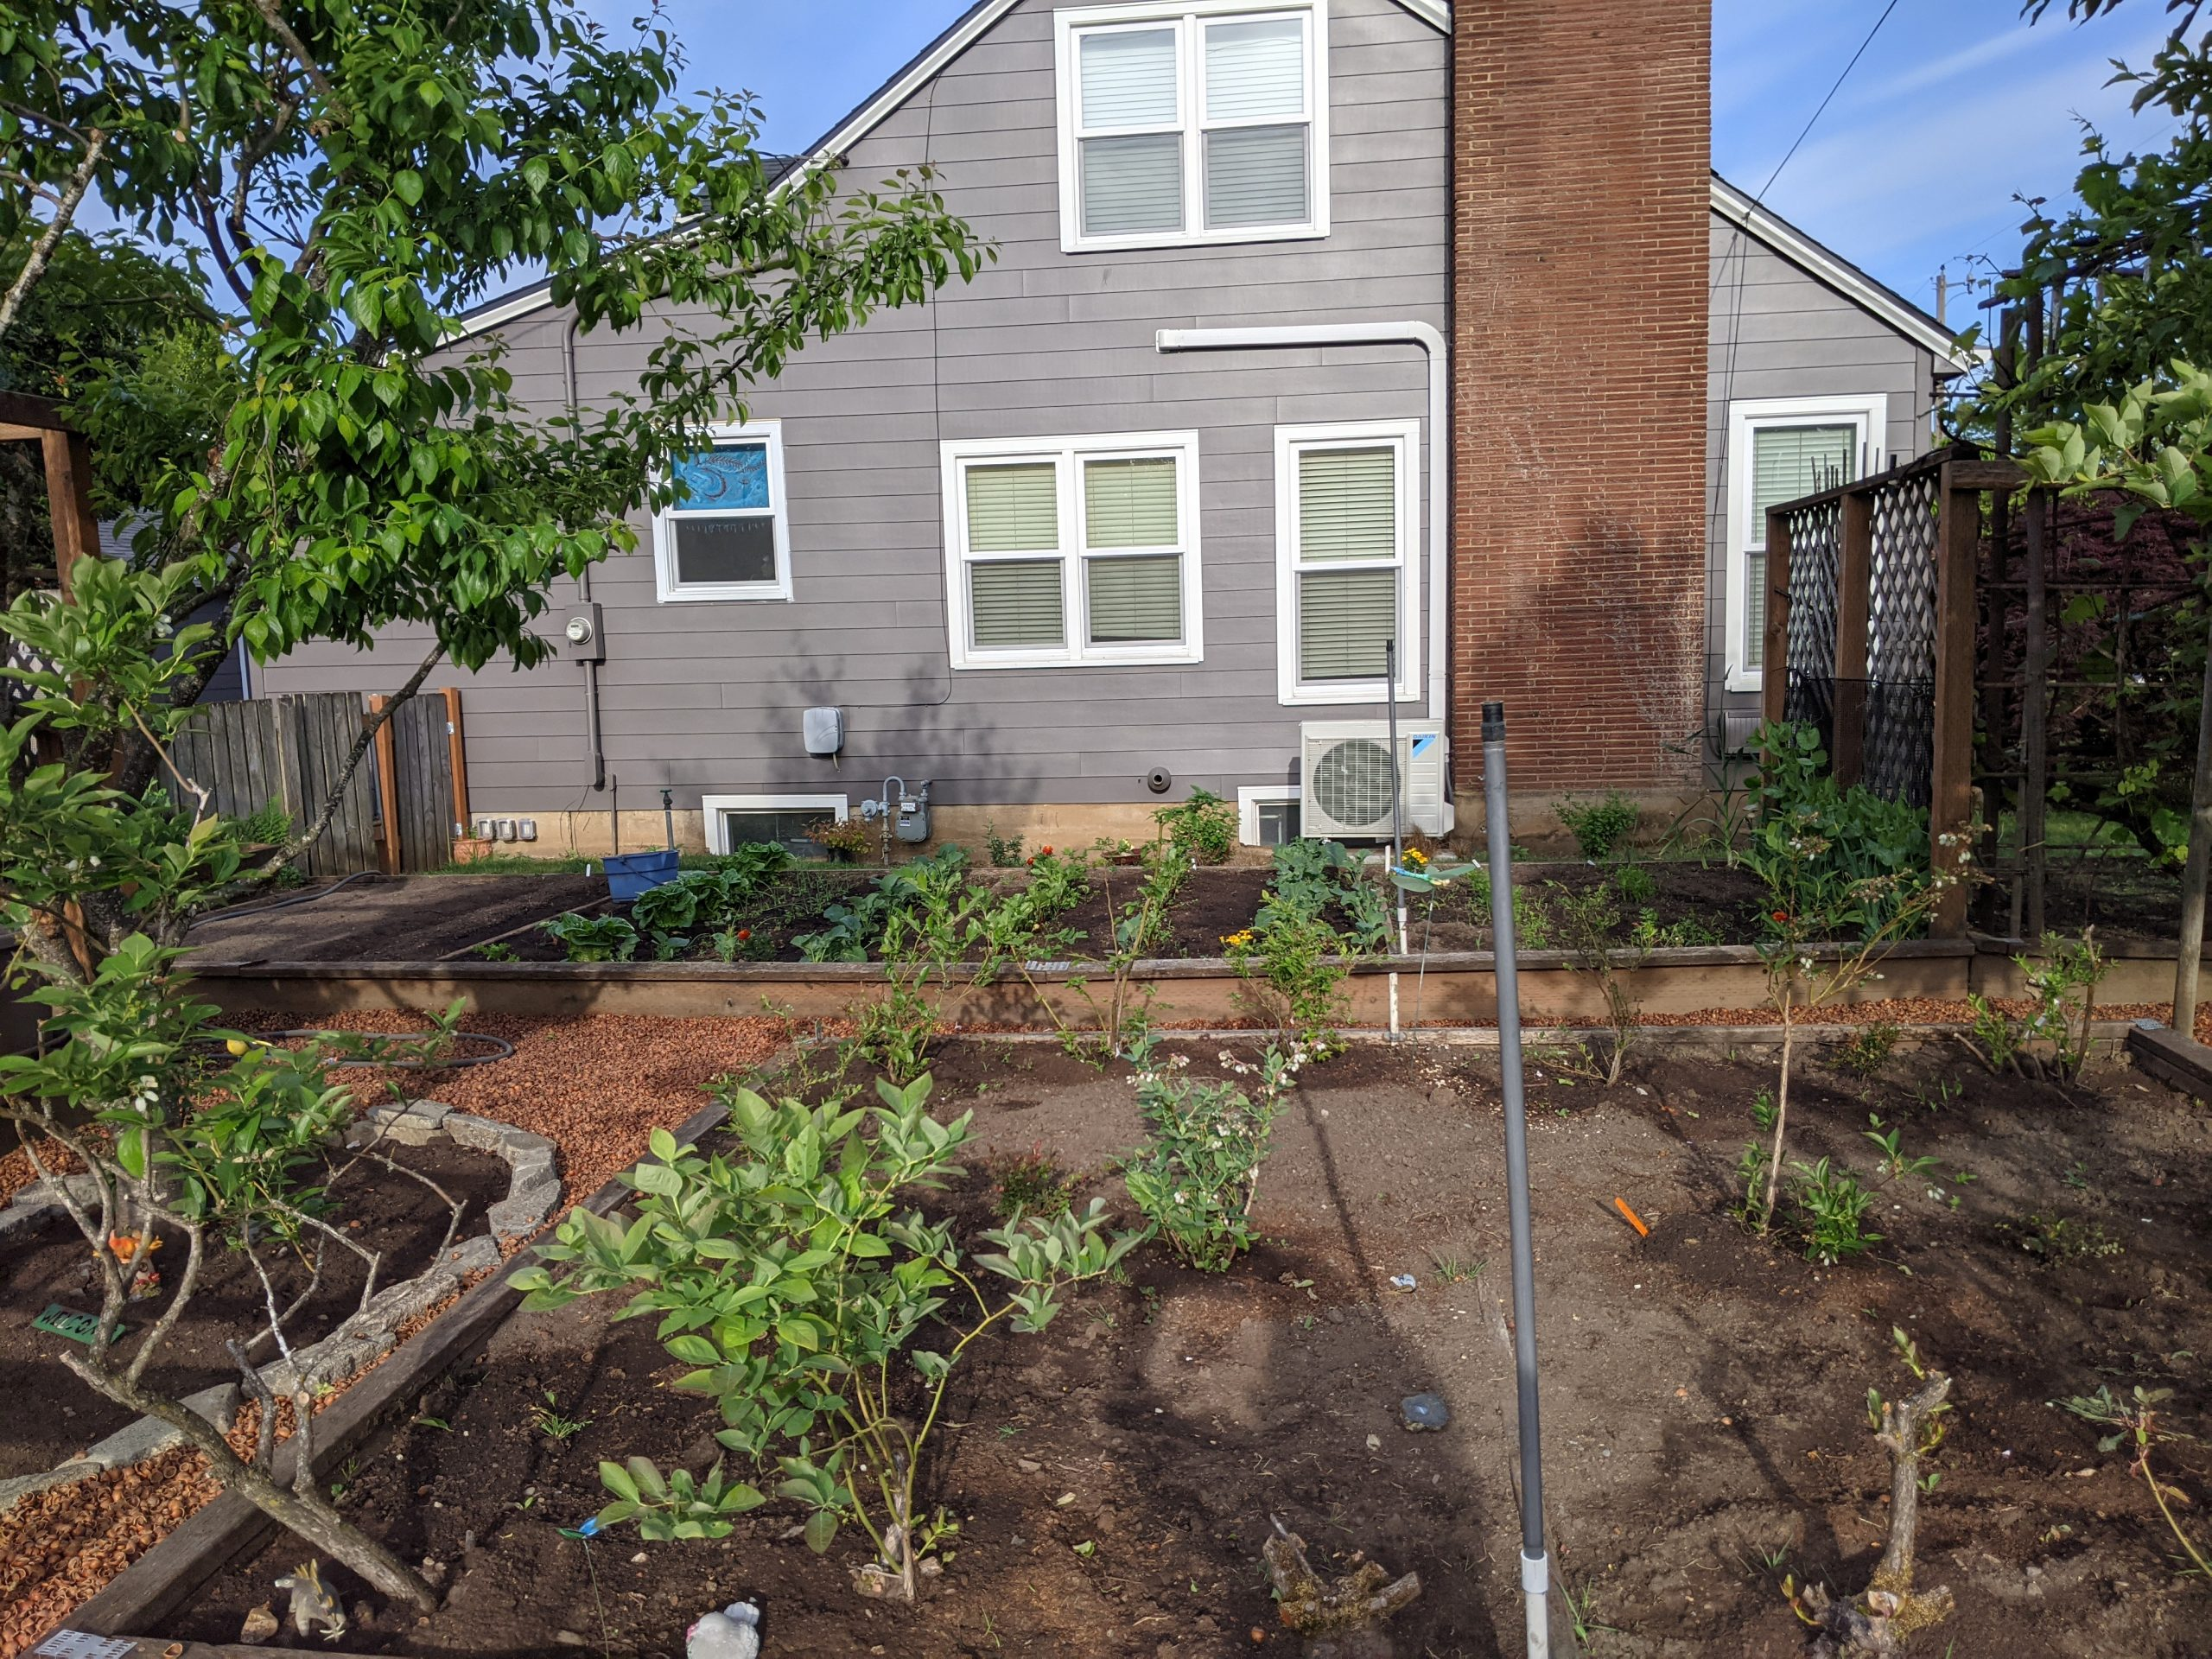 large garden beds with blueberries in foreground